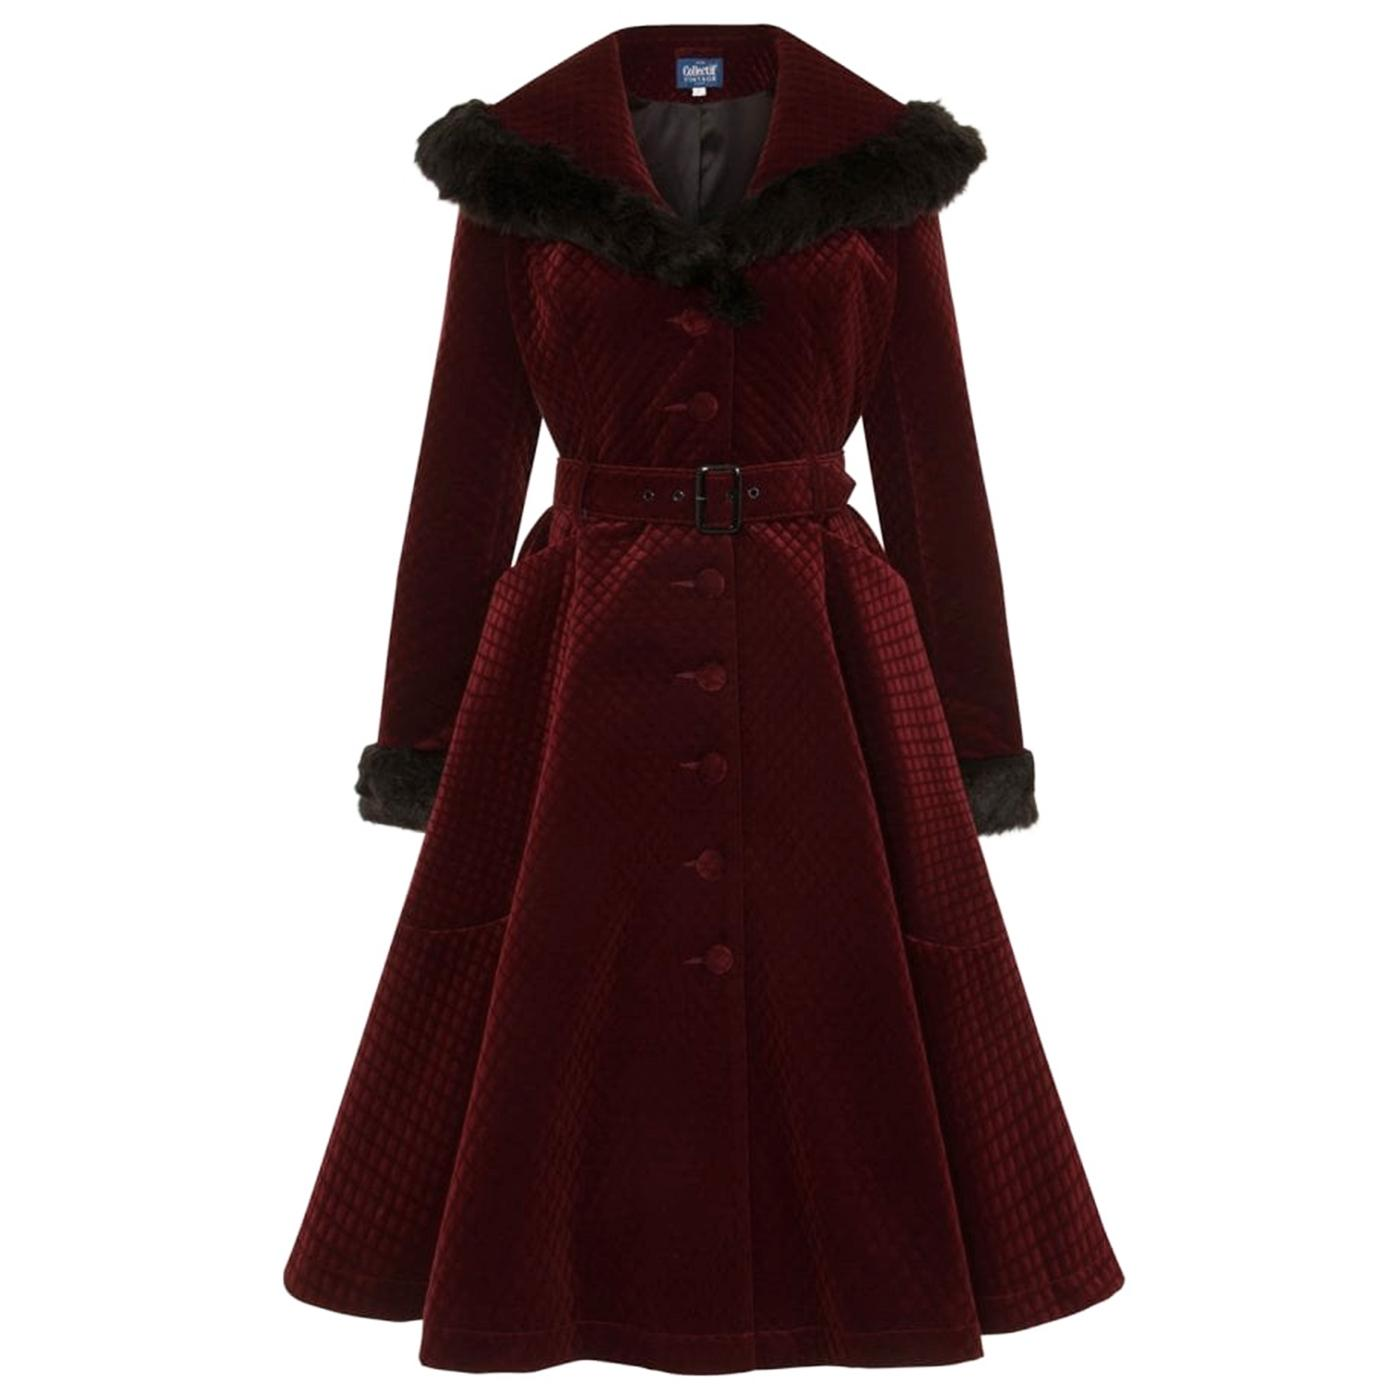 Callie COLLECTIF Quilted Velvet Swing Coat in Wine